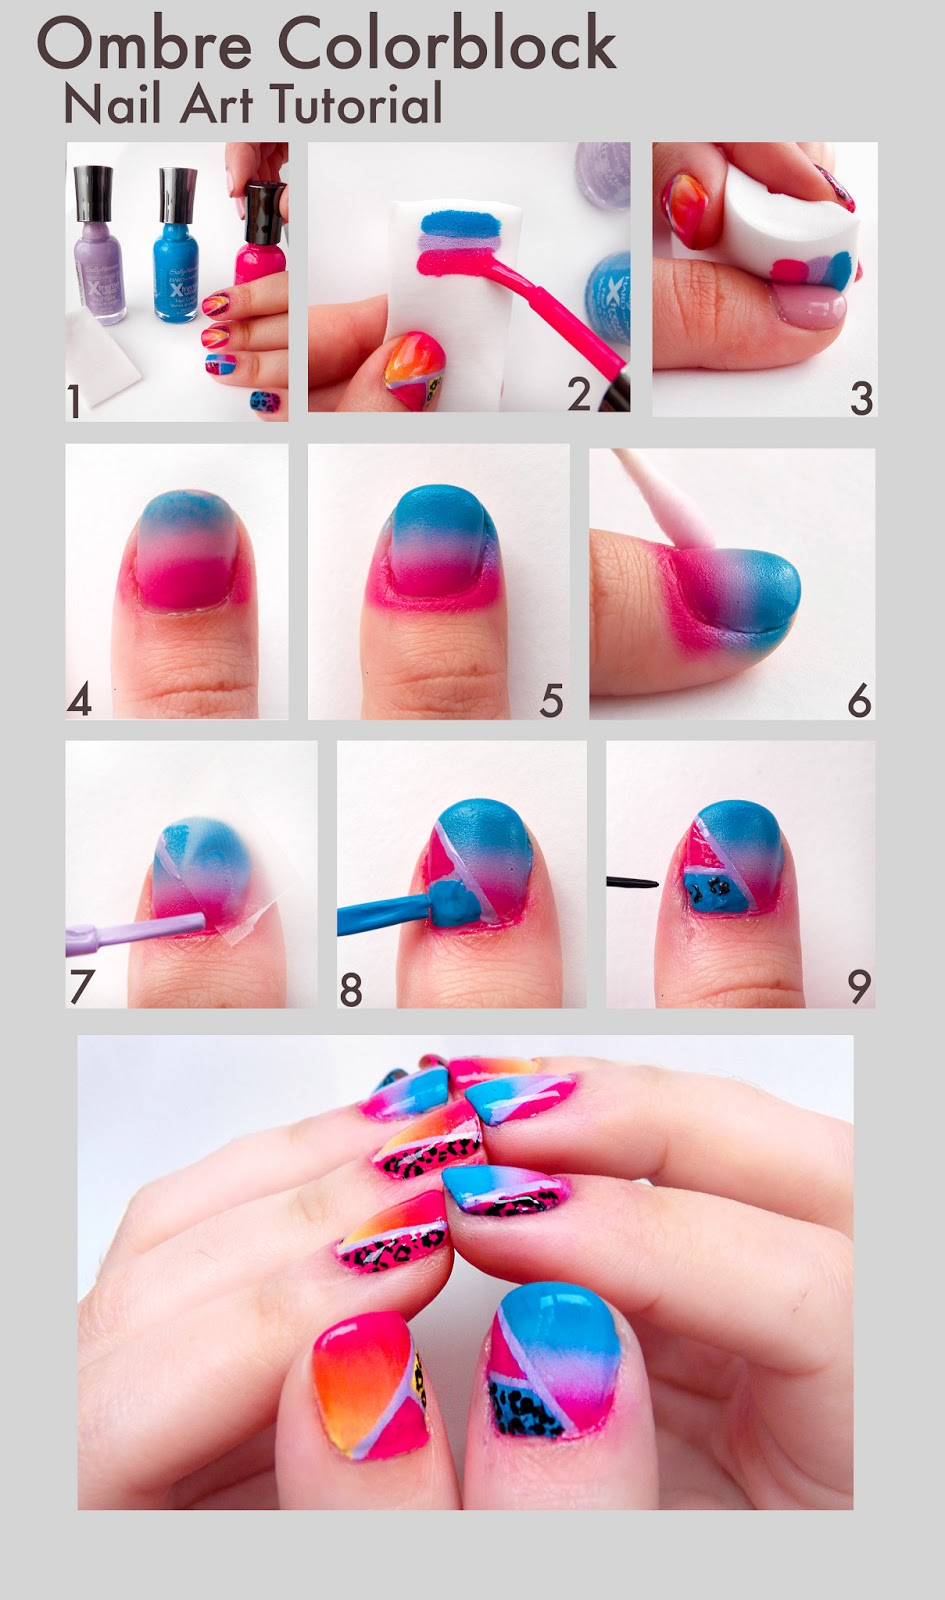 How to create nail art designs at home nail art tutorials for view images nail art tricks xcitefun prinsesfo Images